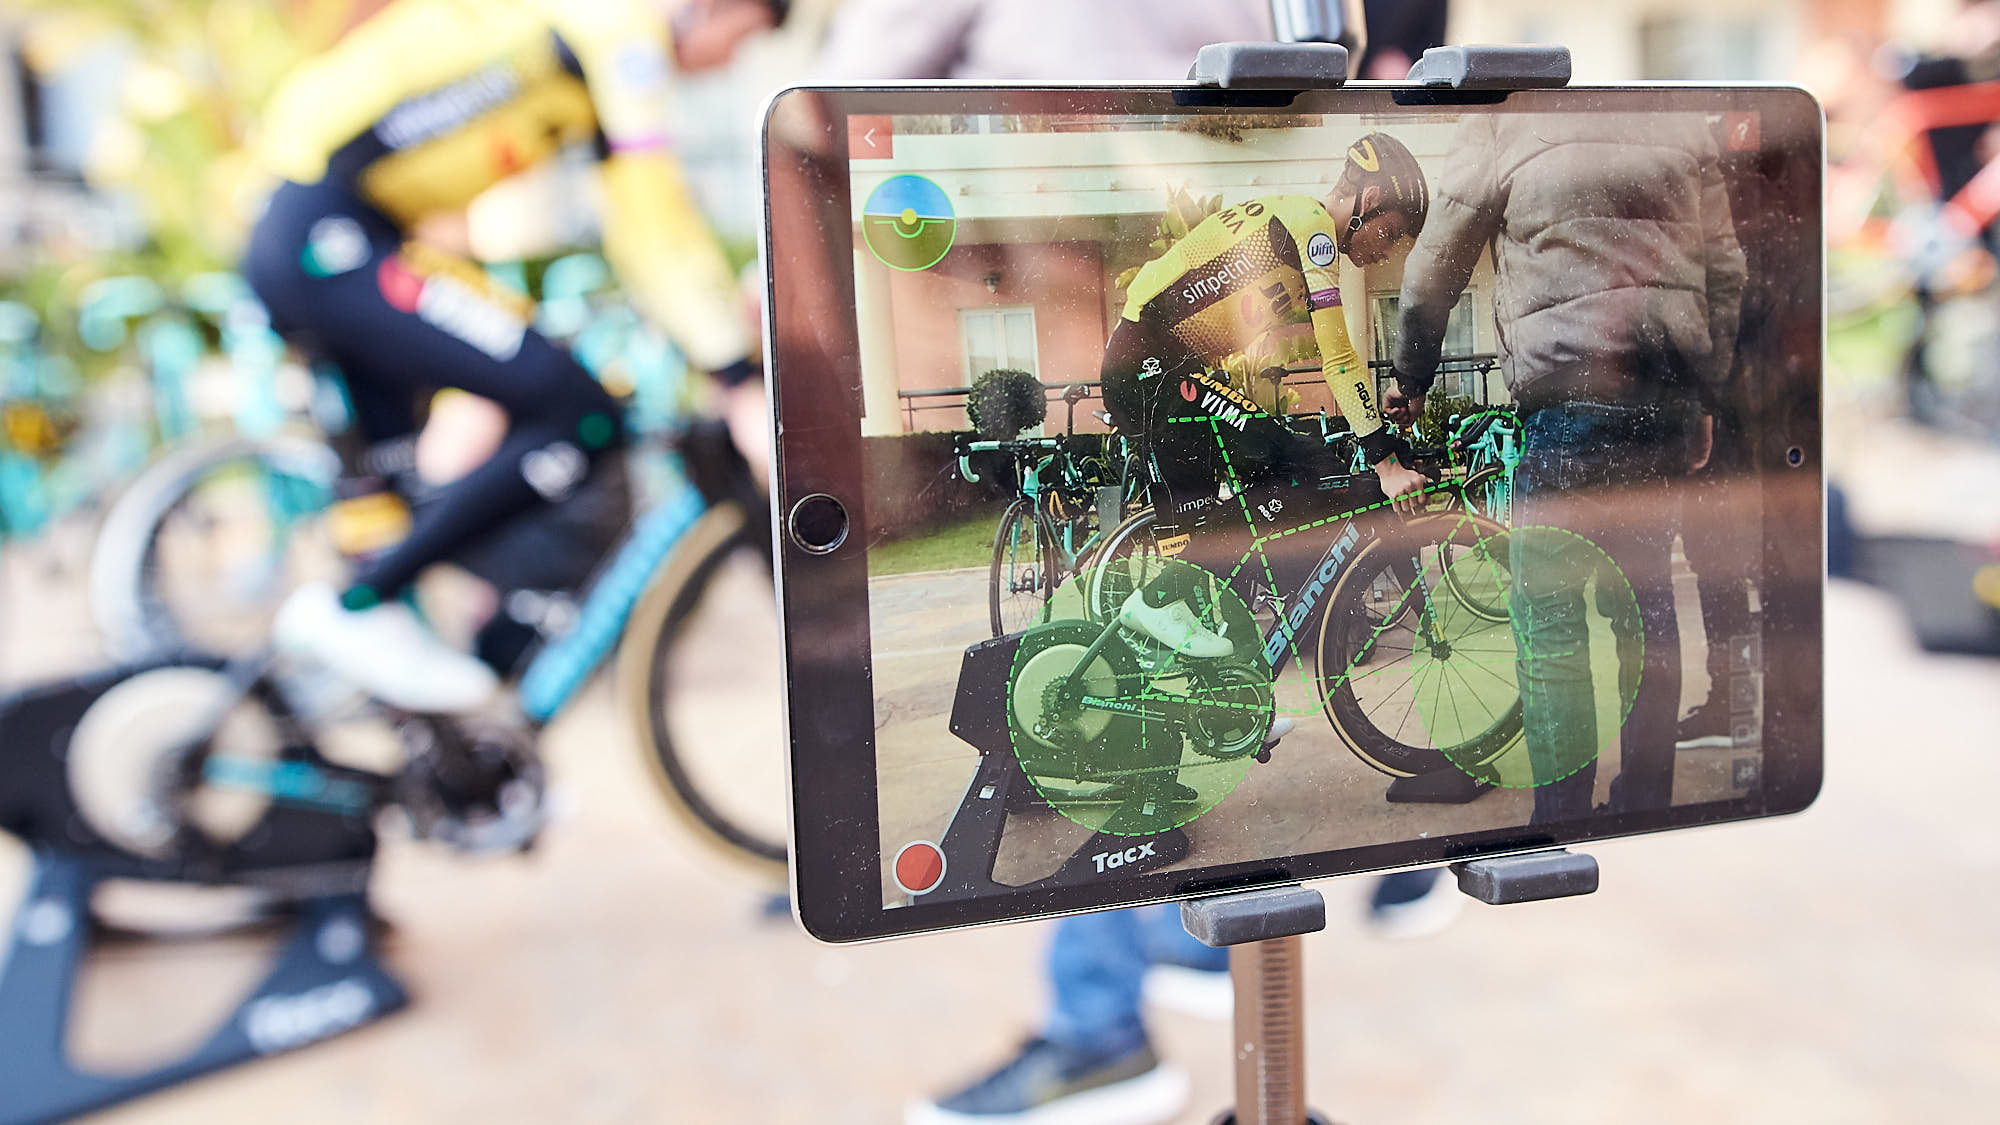 iPad used to perfect time trial position on a bike